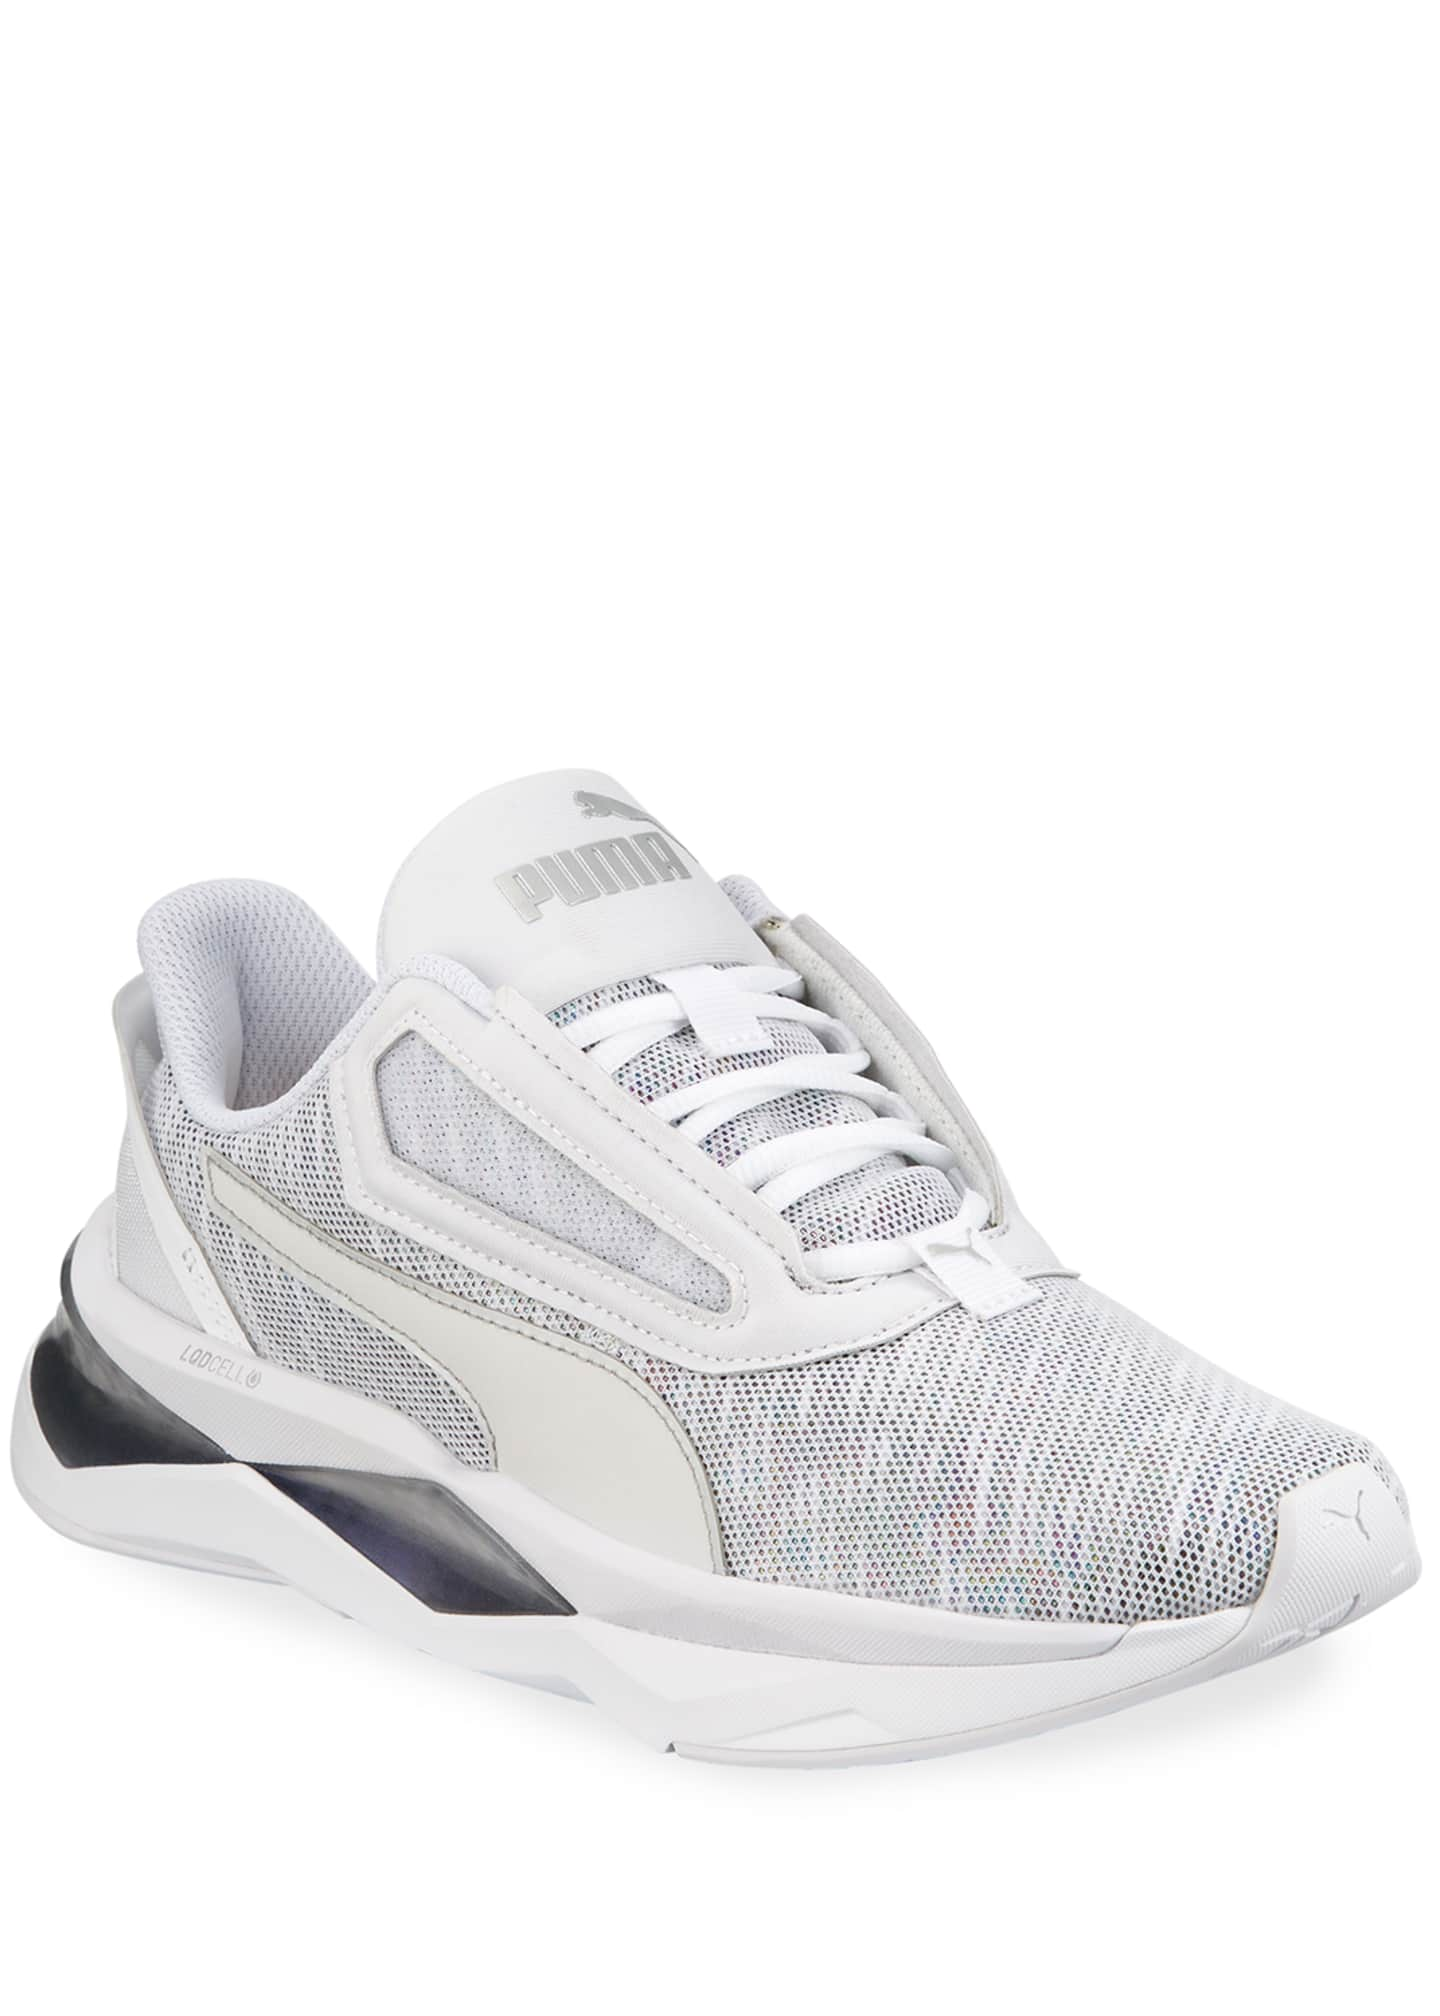 Puma LQDCELL Shatter XT Luster Running Sneakers